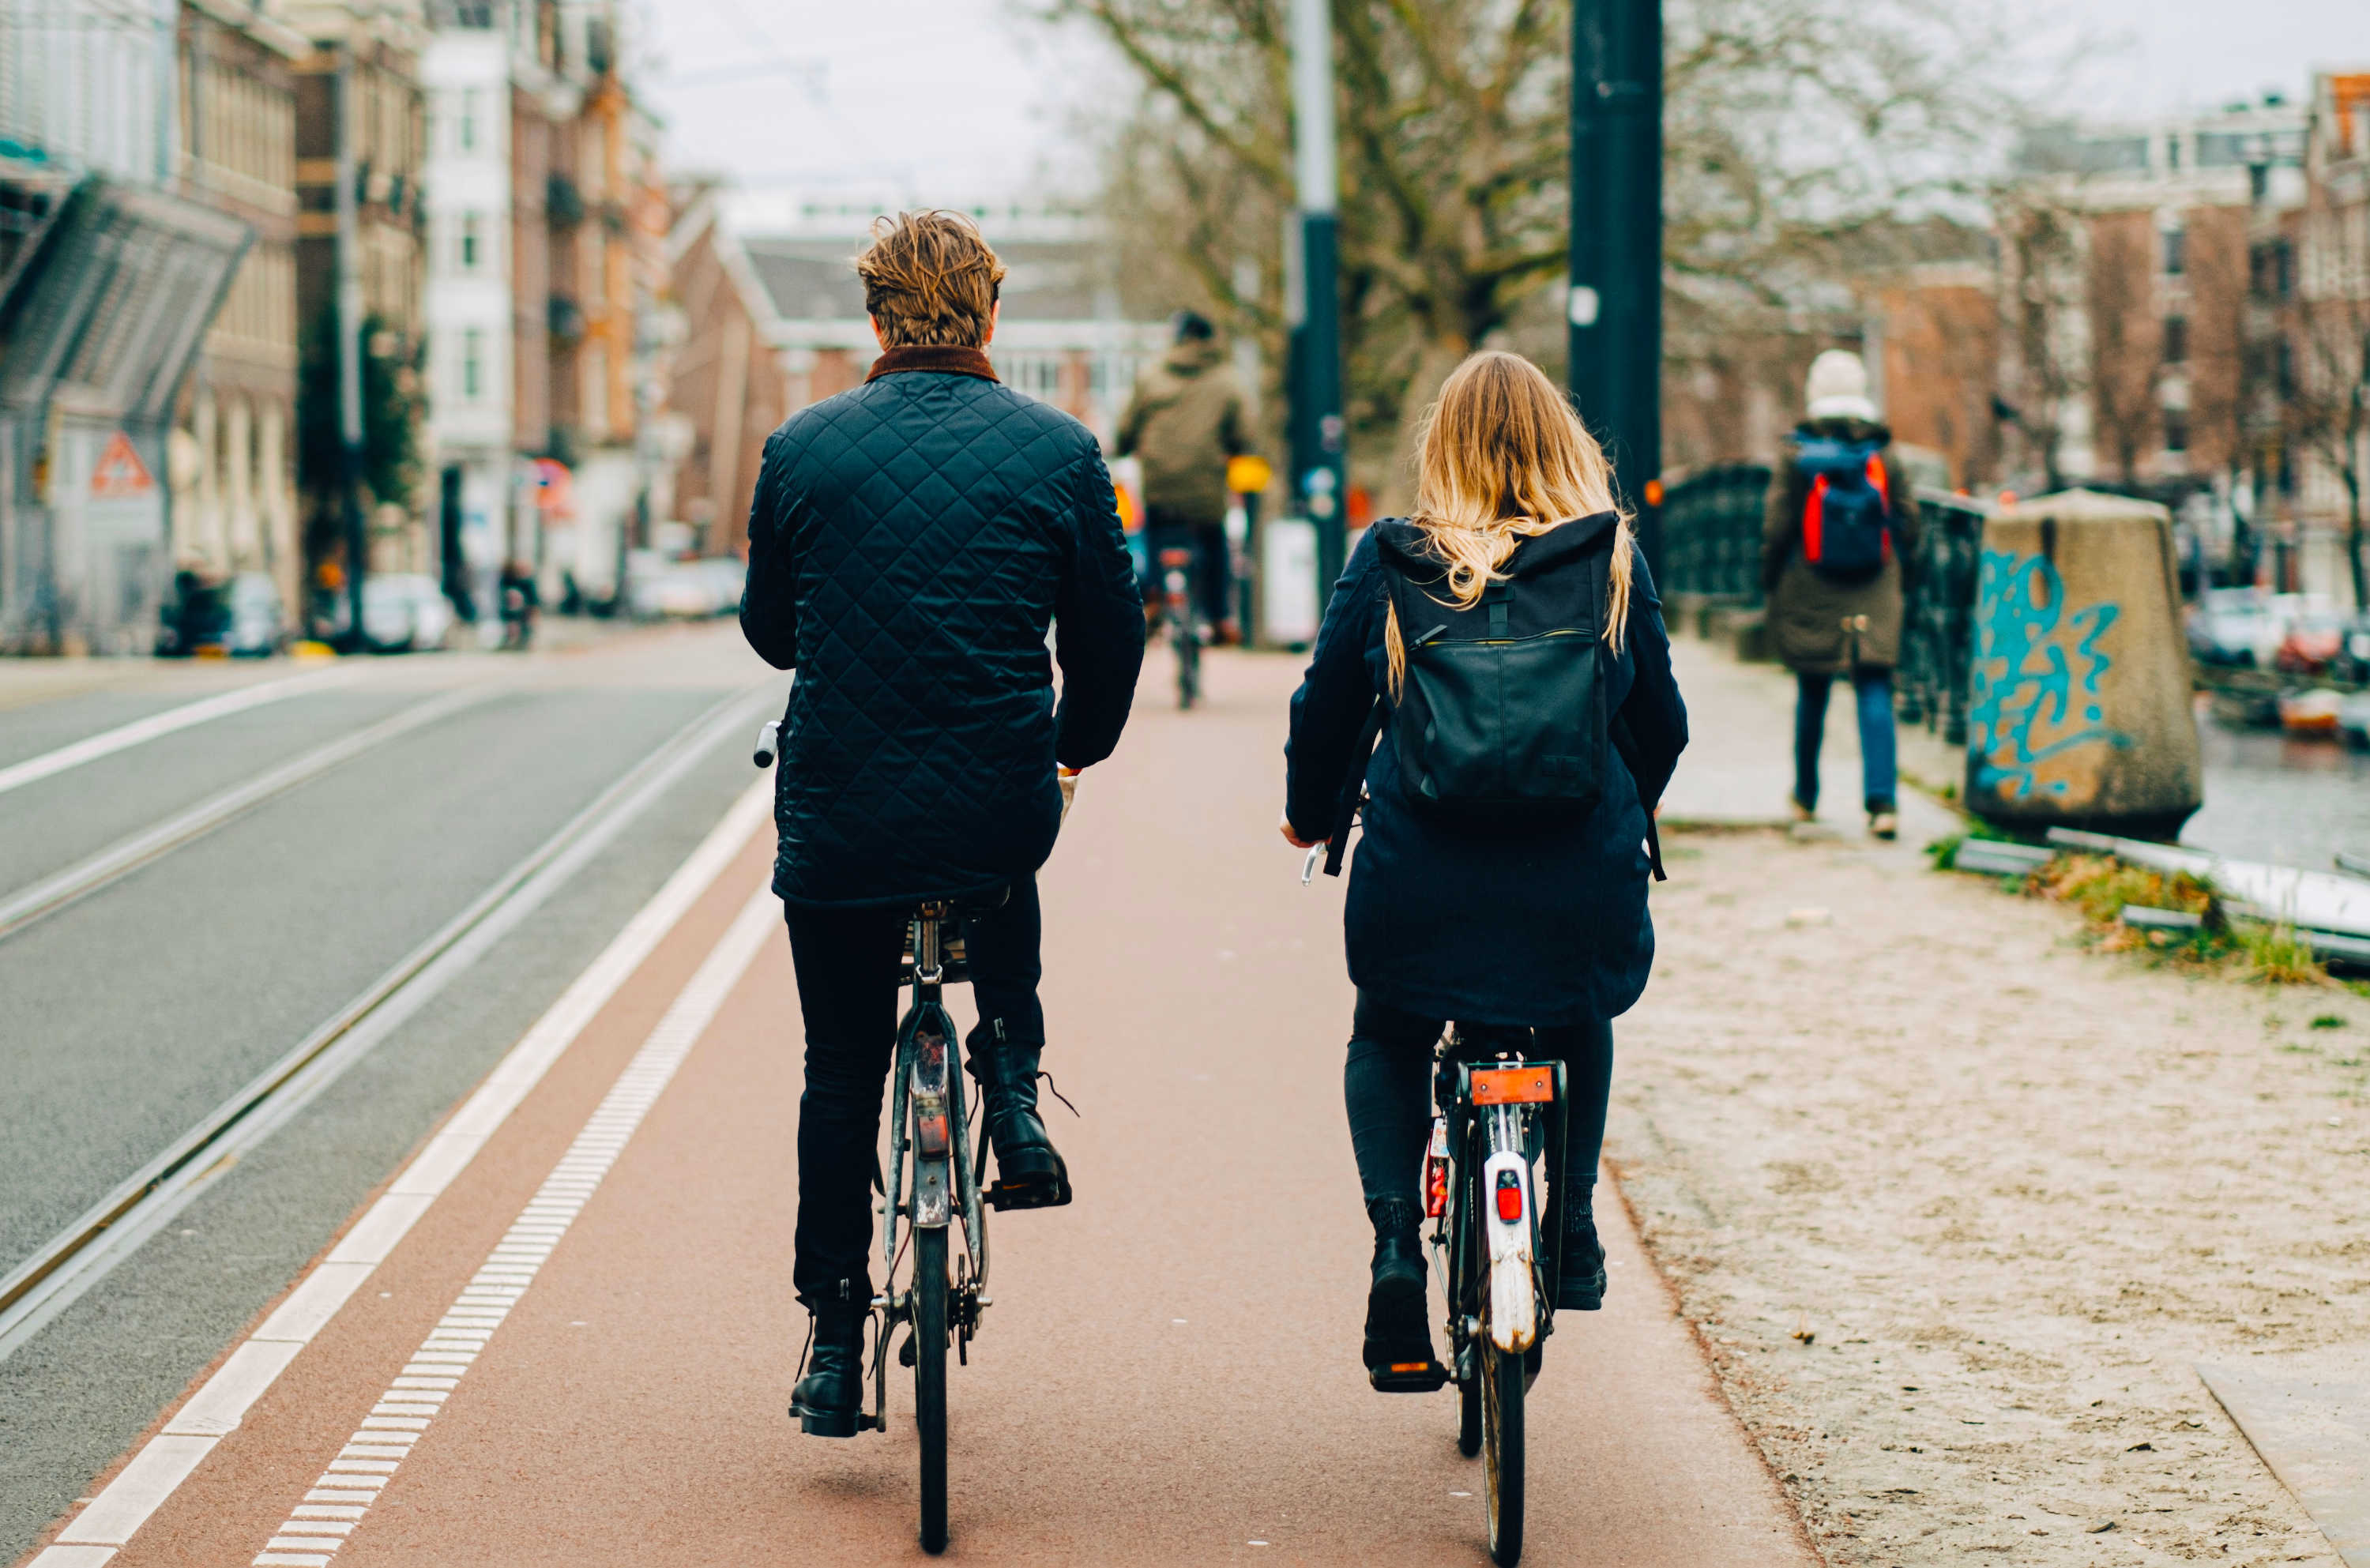 A man and woman ride their bikes along dedicated cycle lane, away from the road and pedestrians.